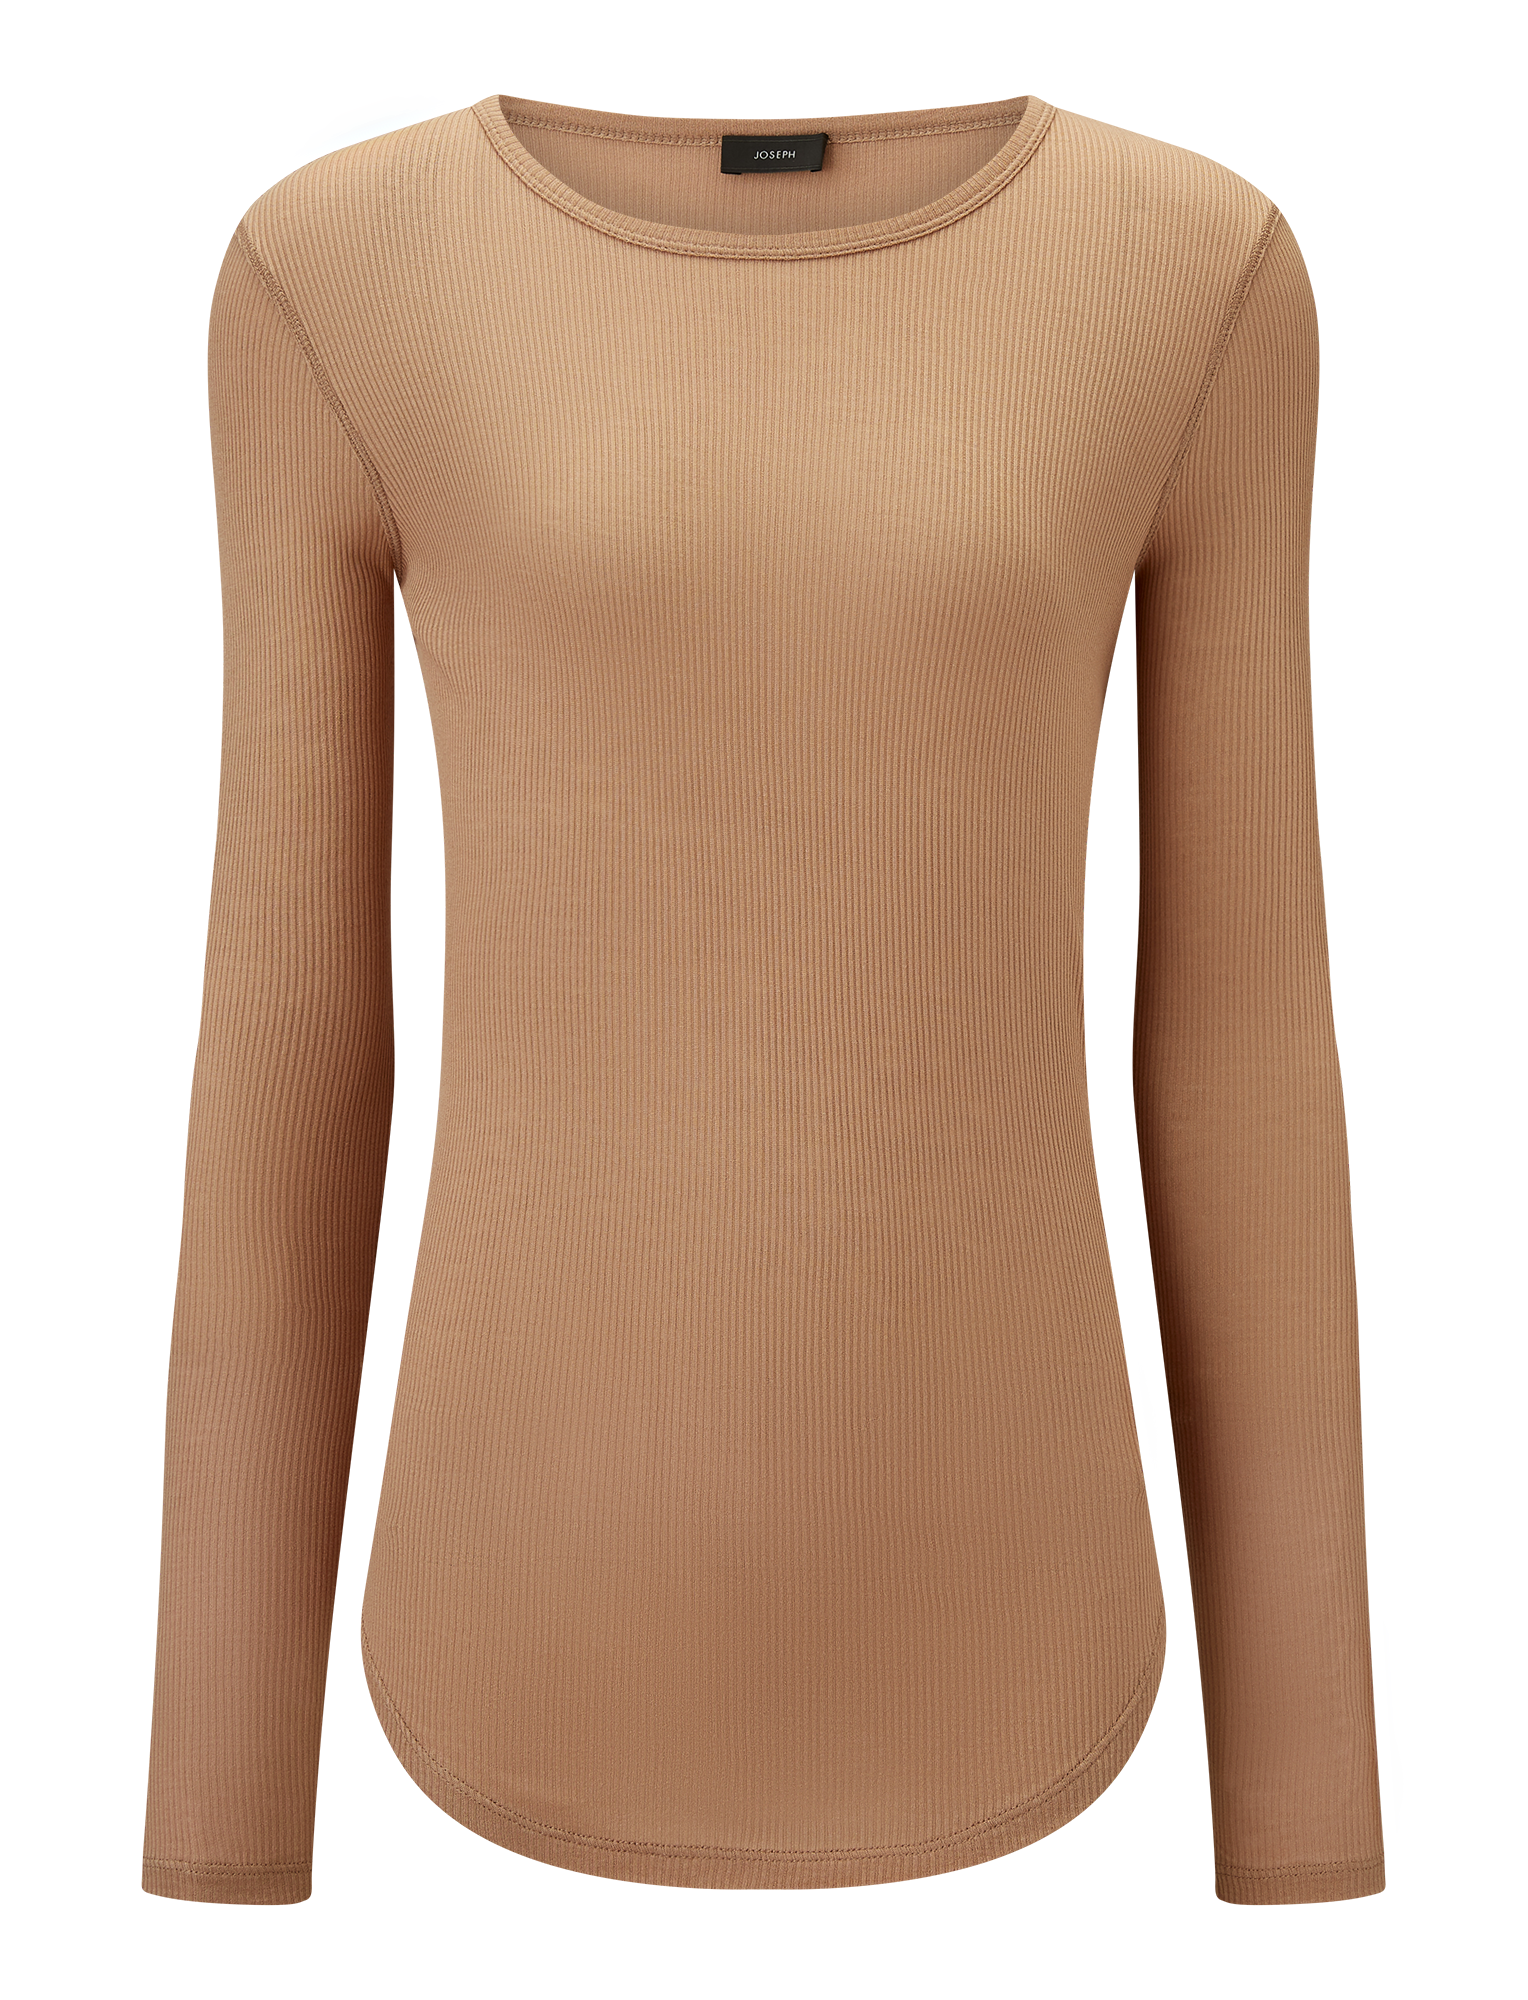 Joseph, Viscose Rib Jersey, in TAN